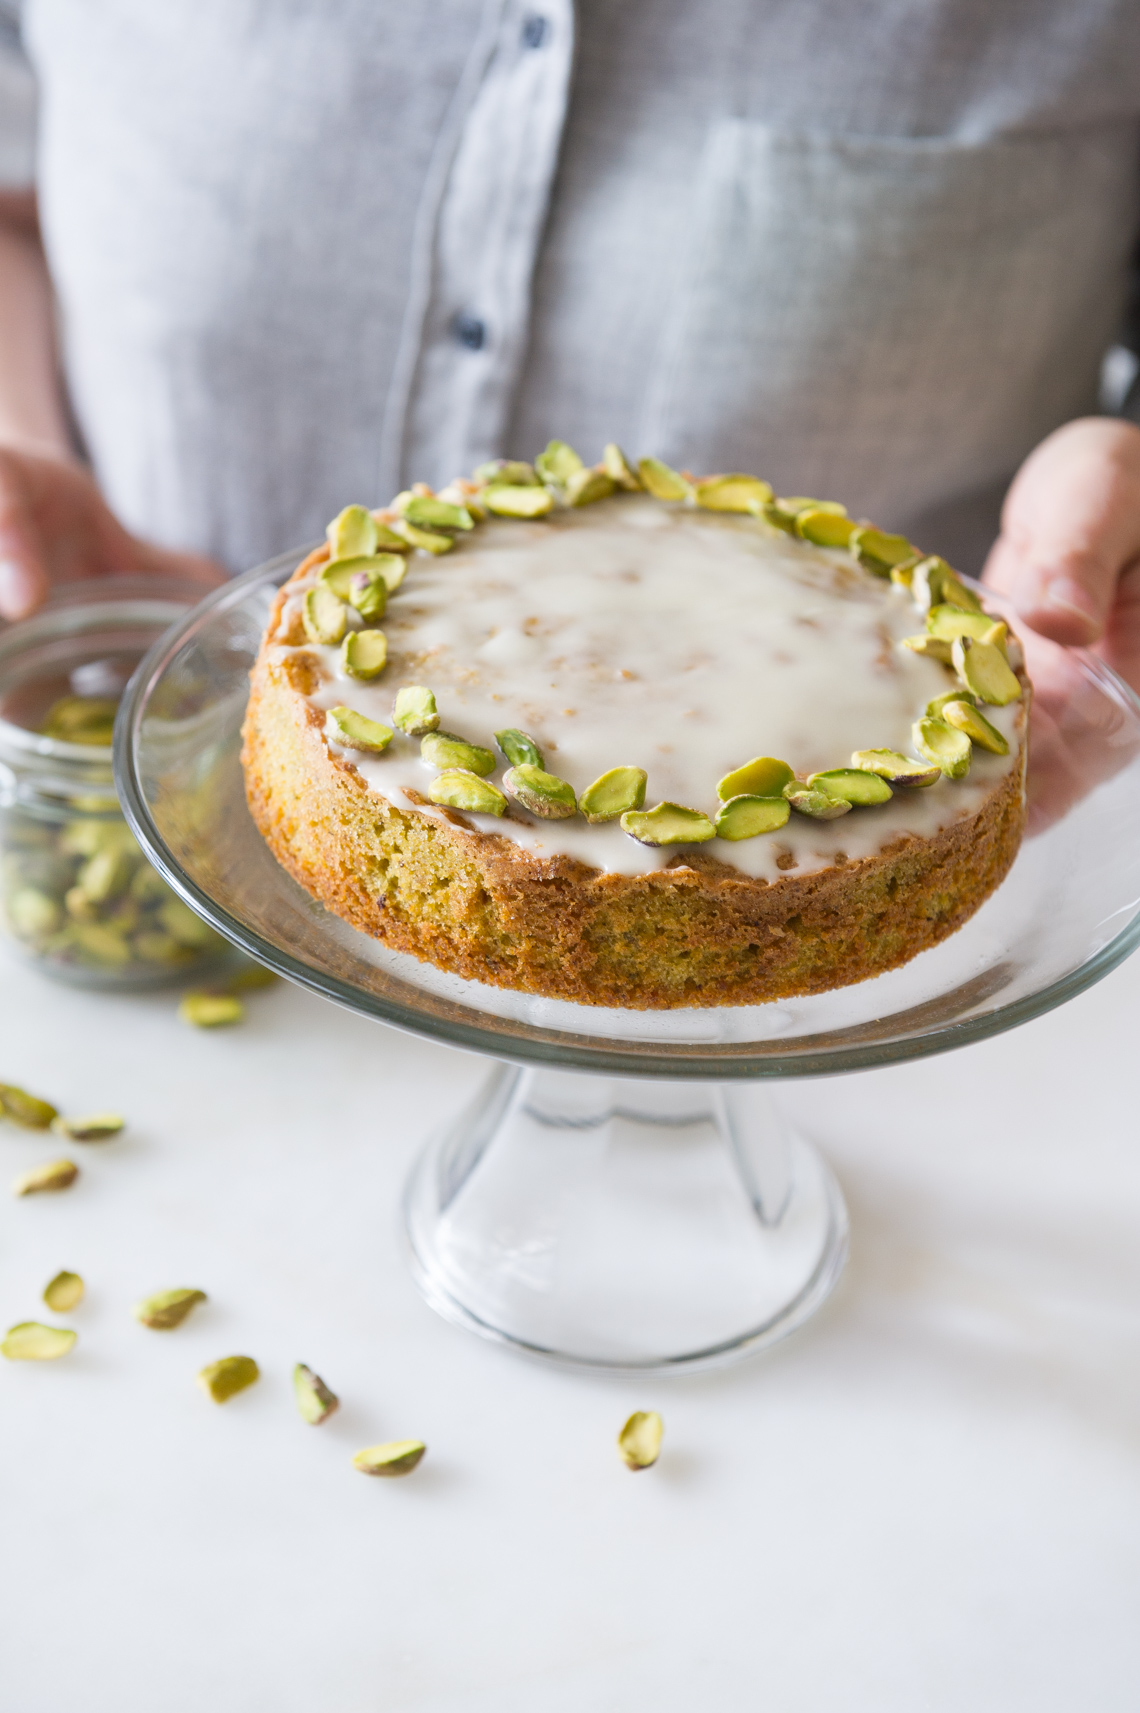 NYC Food Photographer - Pistachio Cake